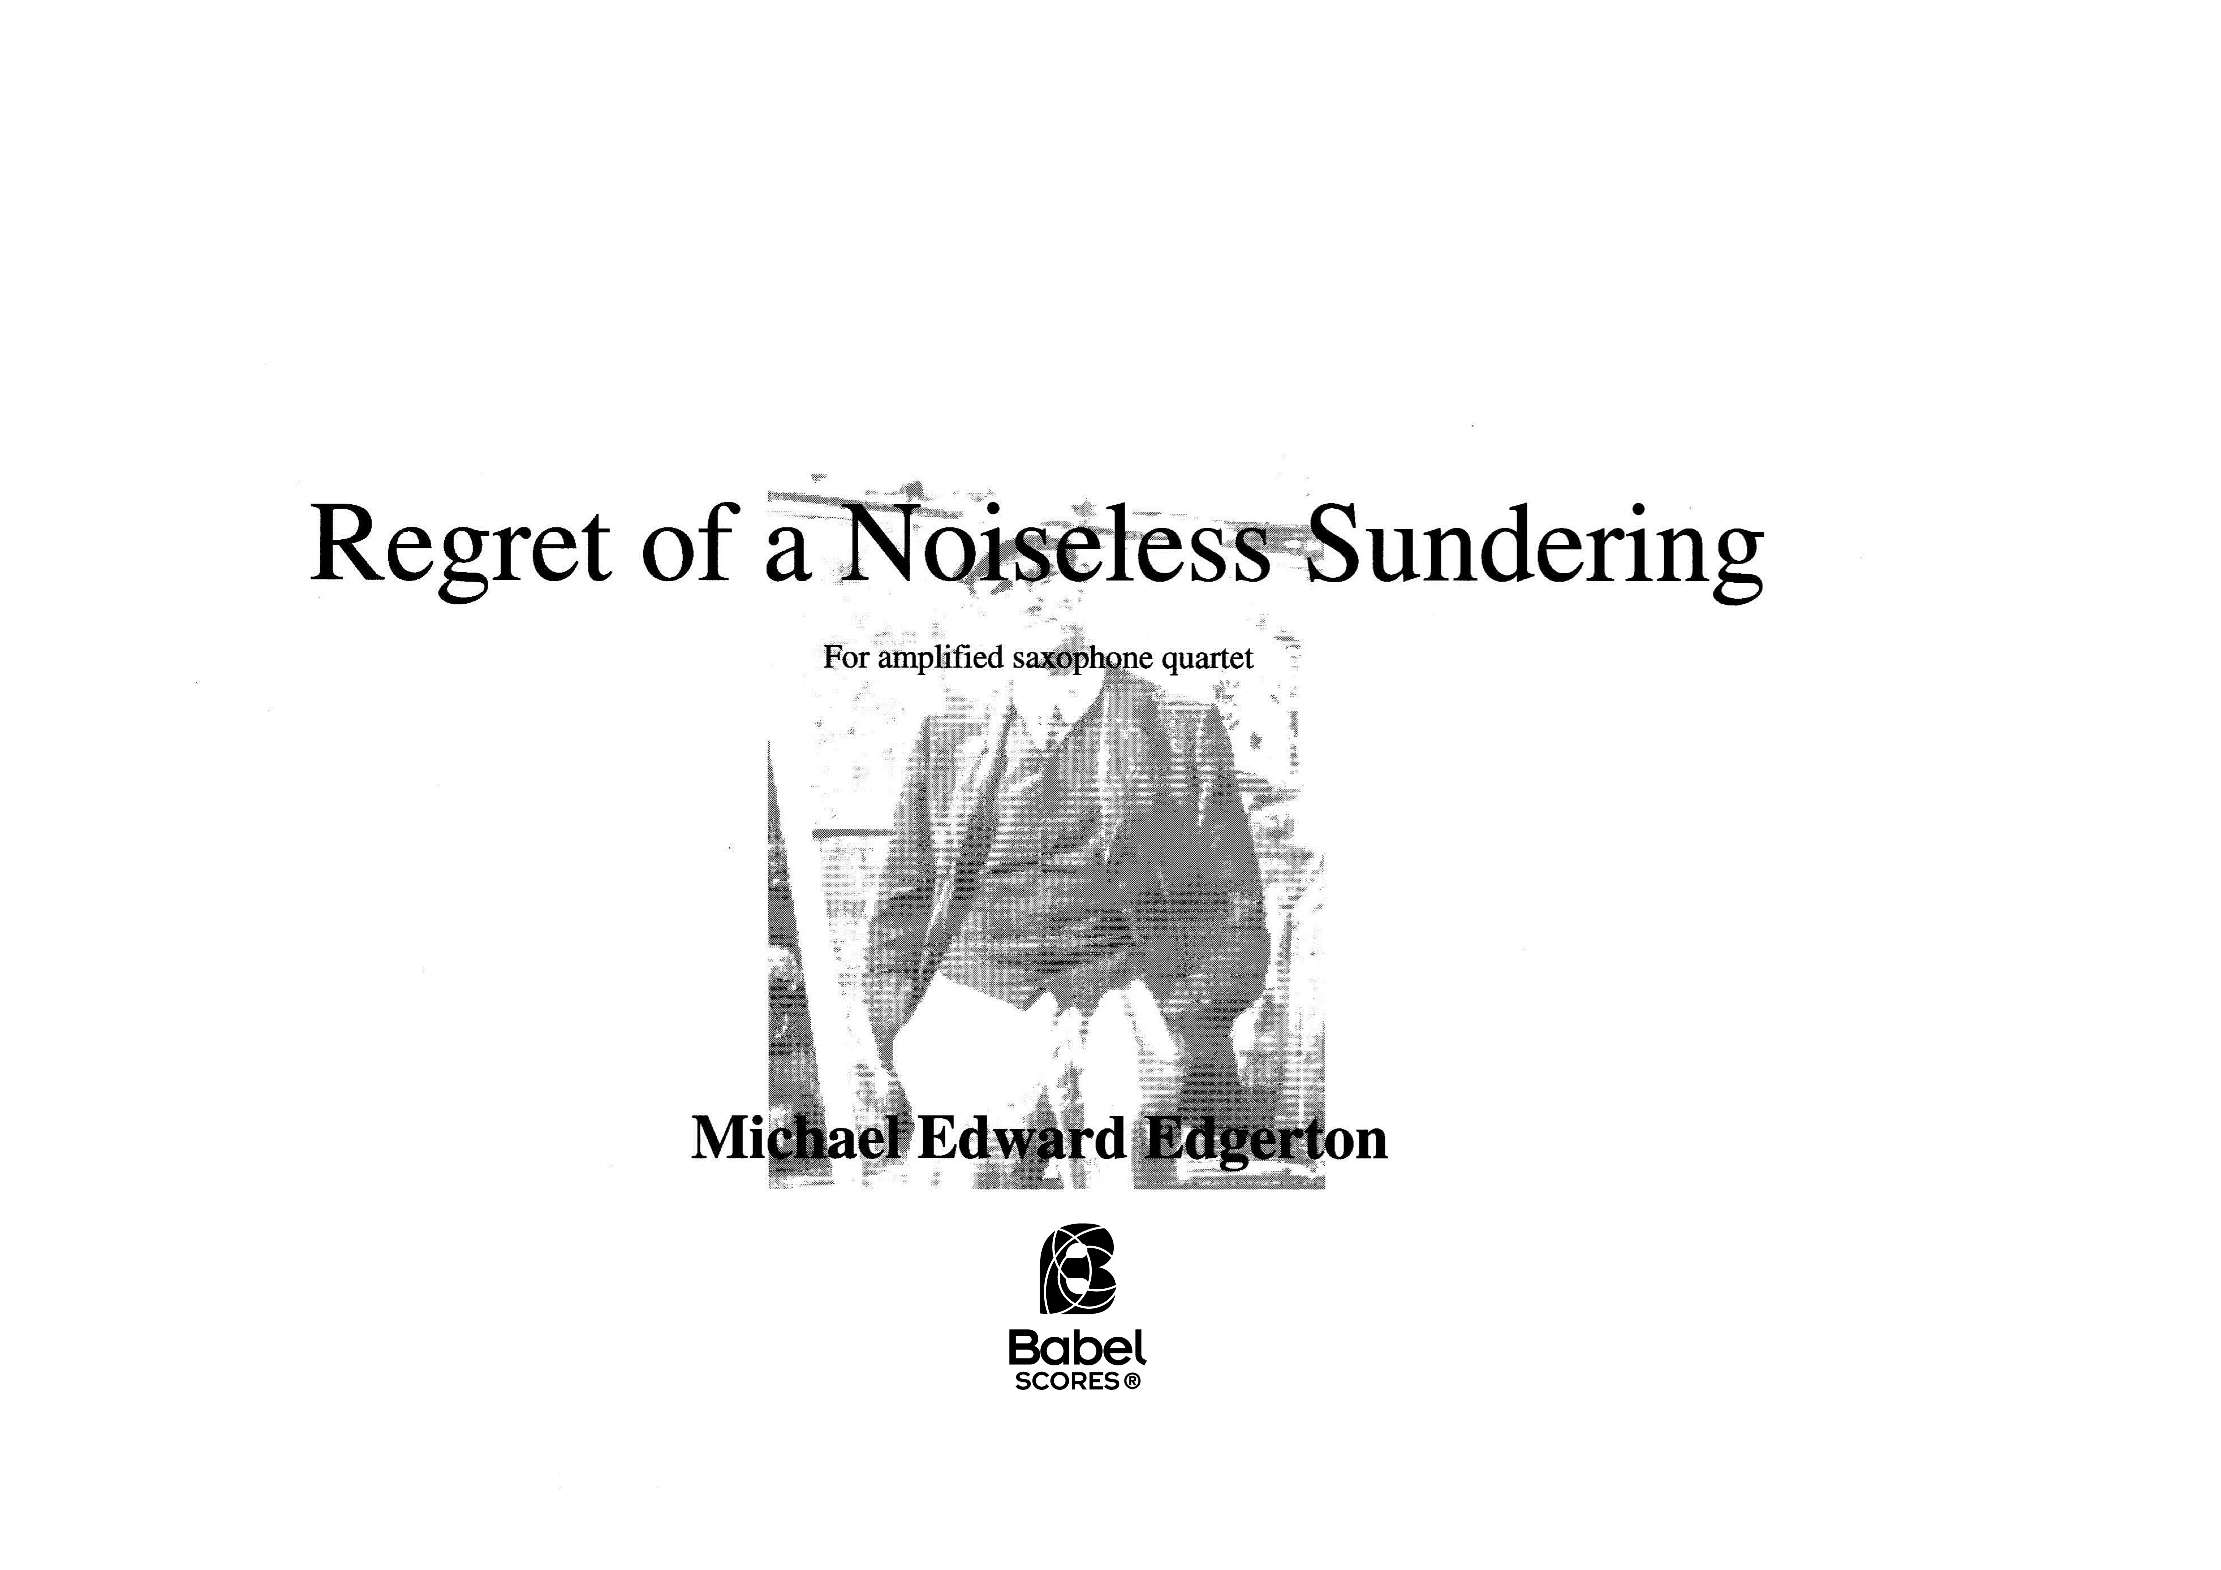 22regret of a noiseless sundering edgerton A4 z